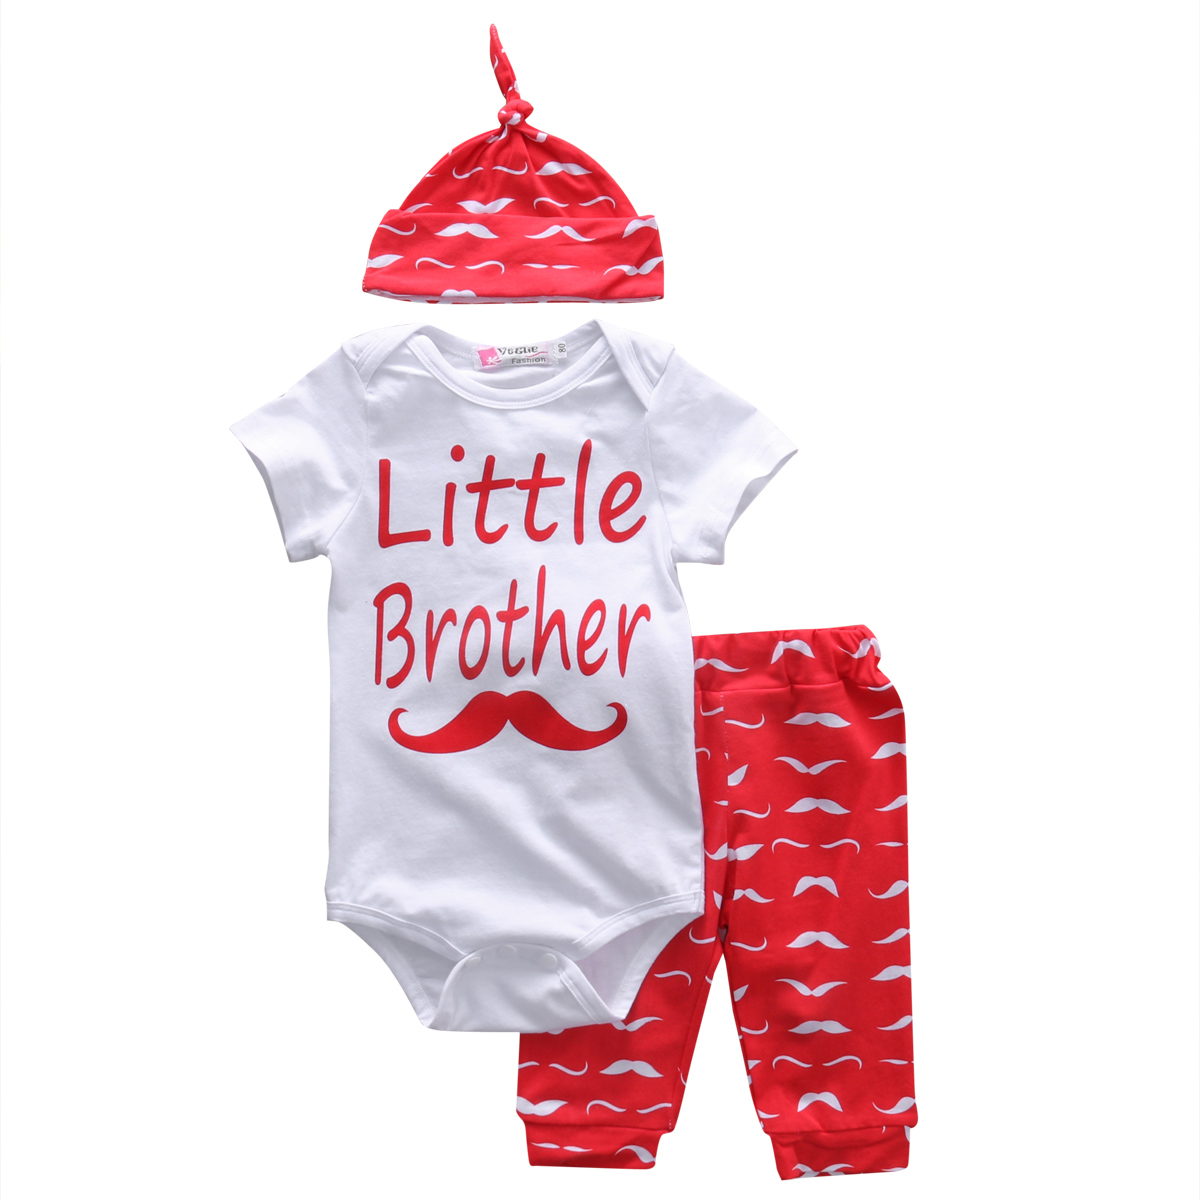 Cotton Newborn Baby Girl Boy Clothes Little Brother Cotton Romper Bodysuit Kid Legging Pants Hat 3PCS Outfits Bebes Clothing Set newborn baby boy girl 5 pcs clothing set cotton cartoon monk tops pants bib hats infant clothes 0 3 months hight quality